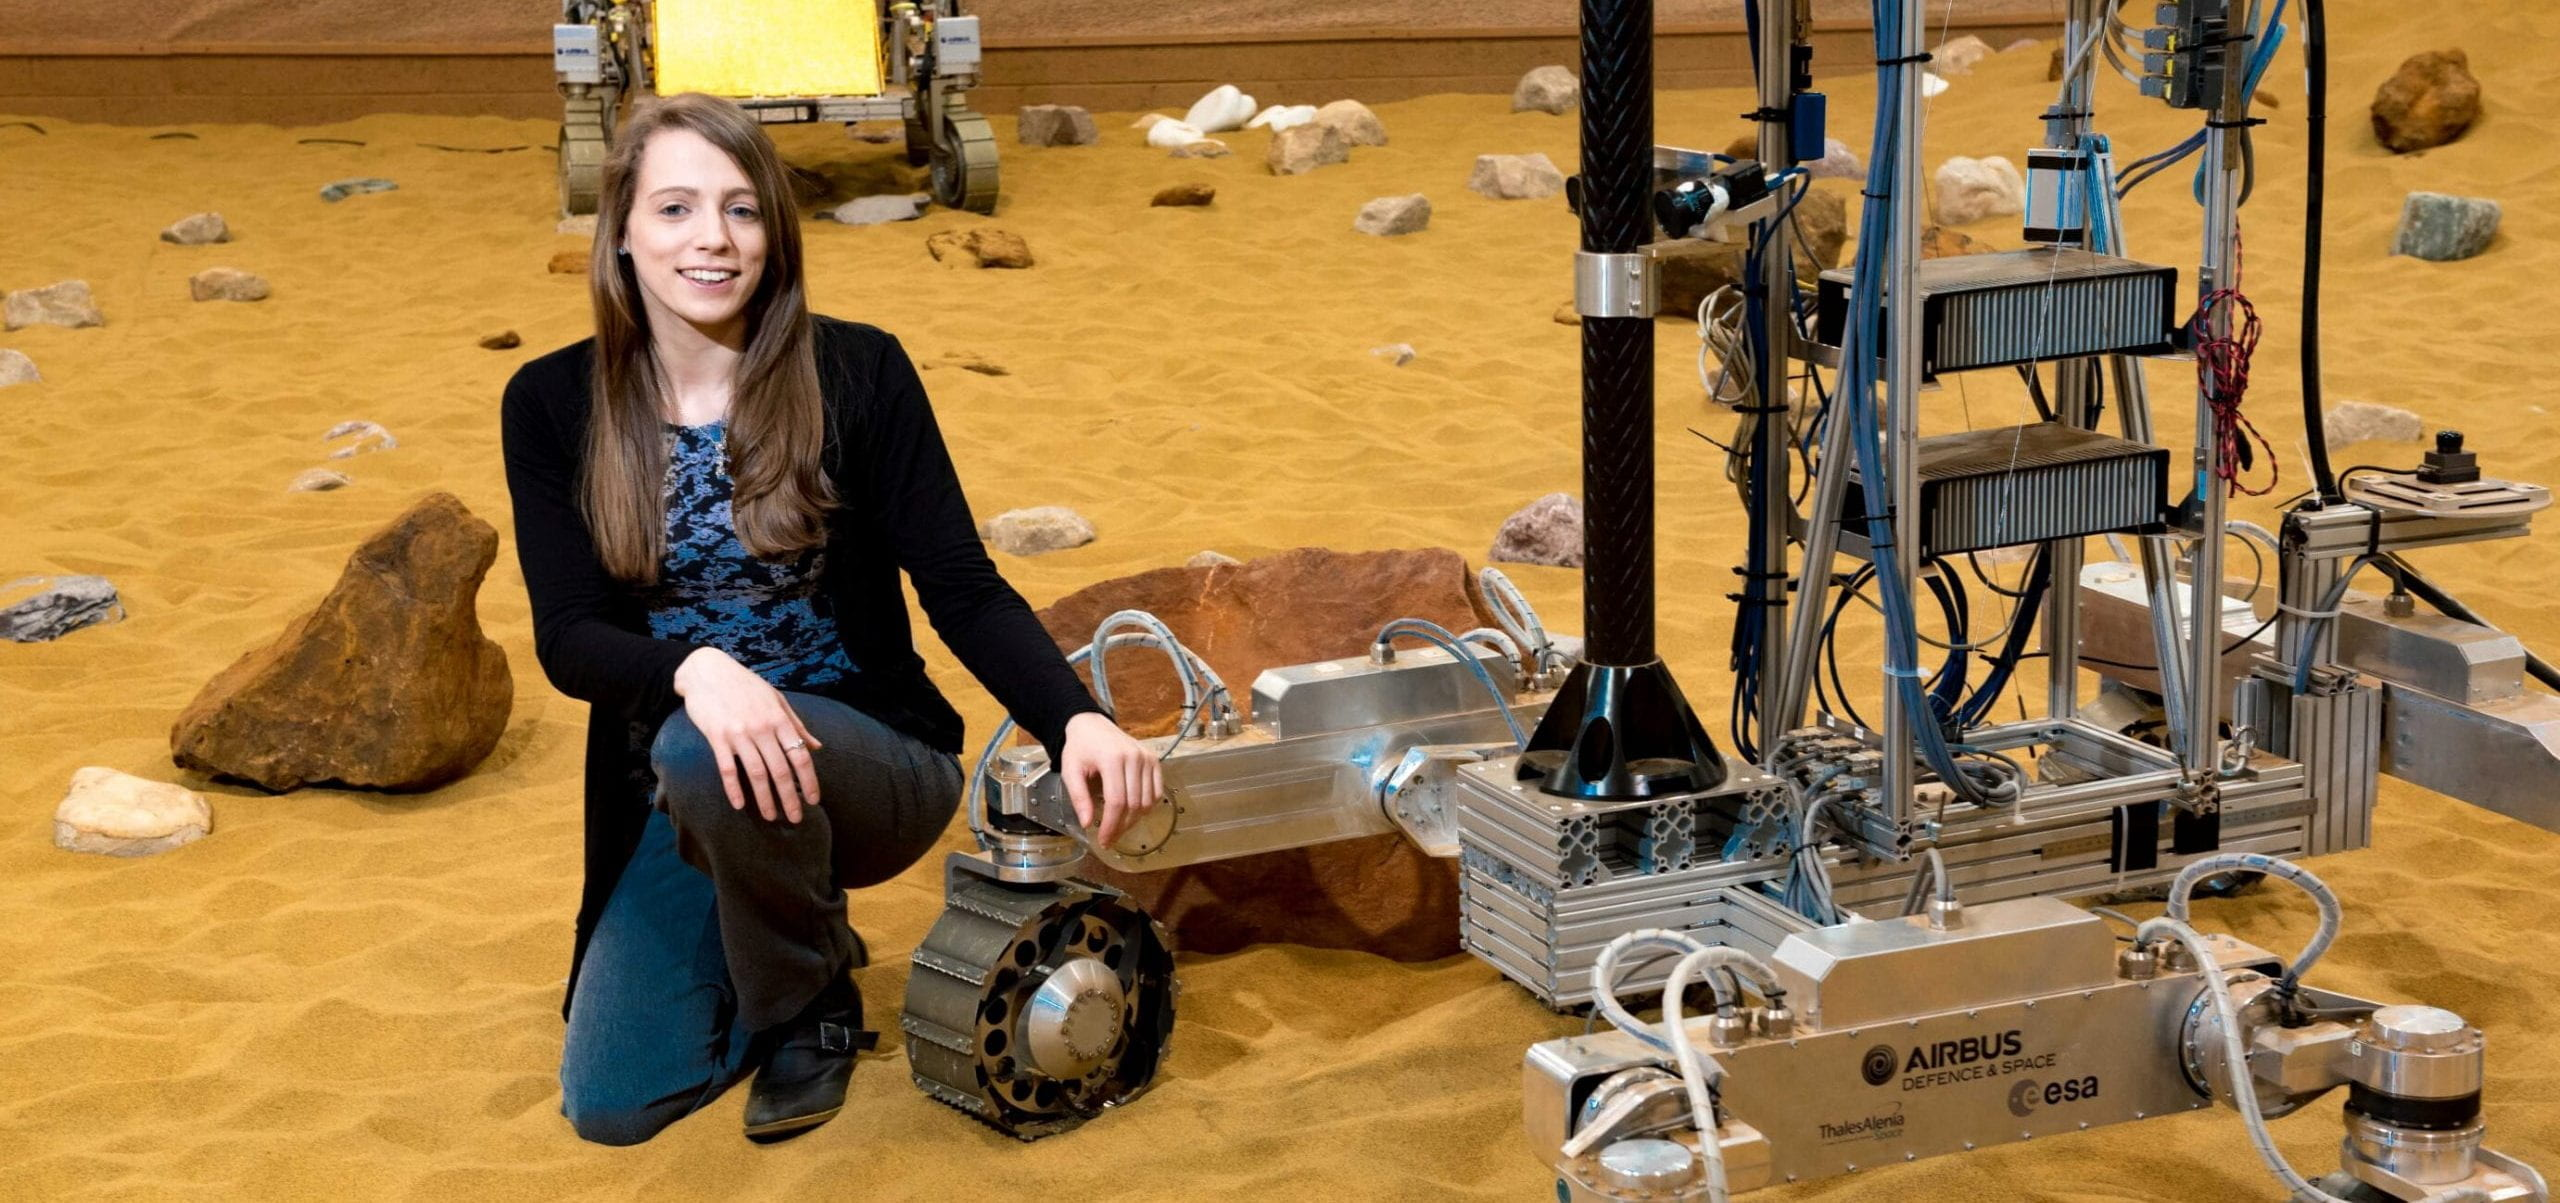 Kat Styles working on the ExoMars rover at Airbus